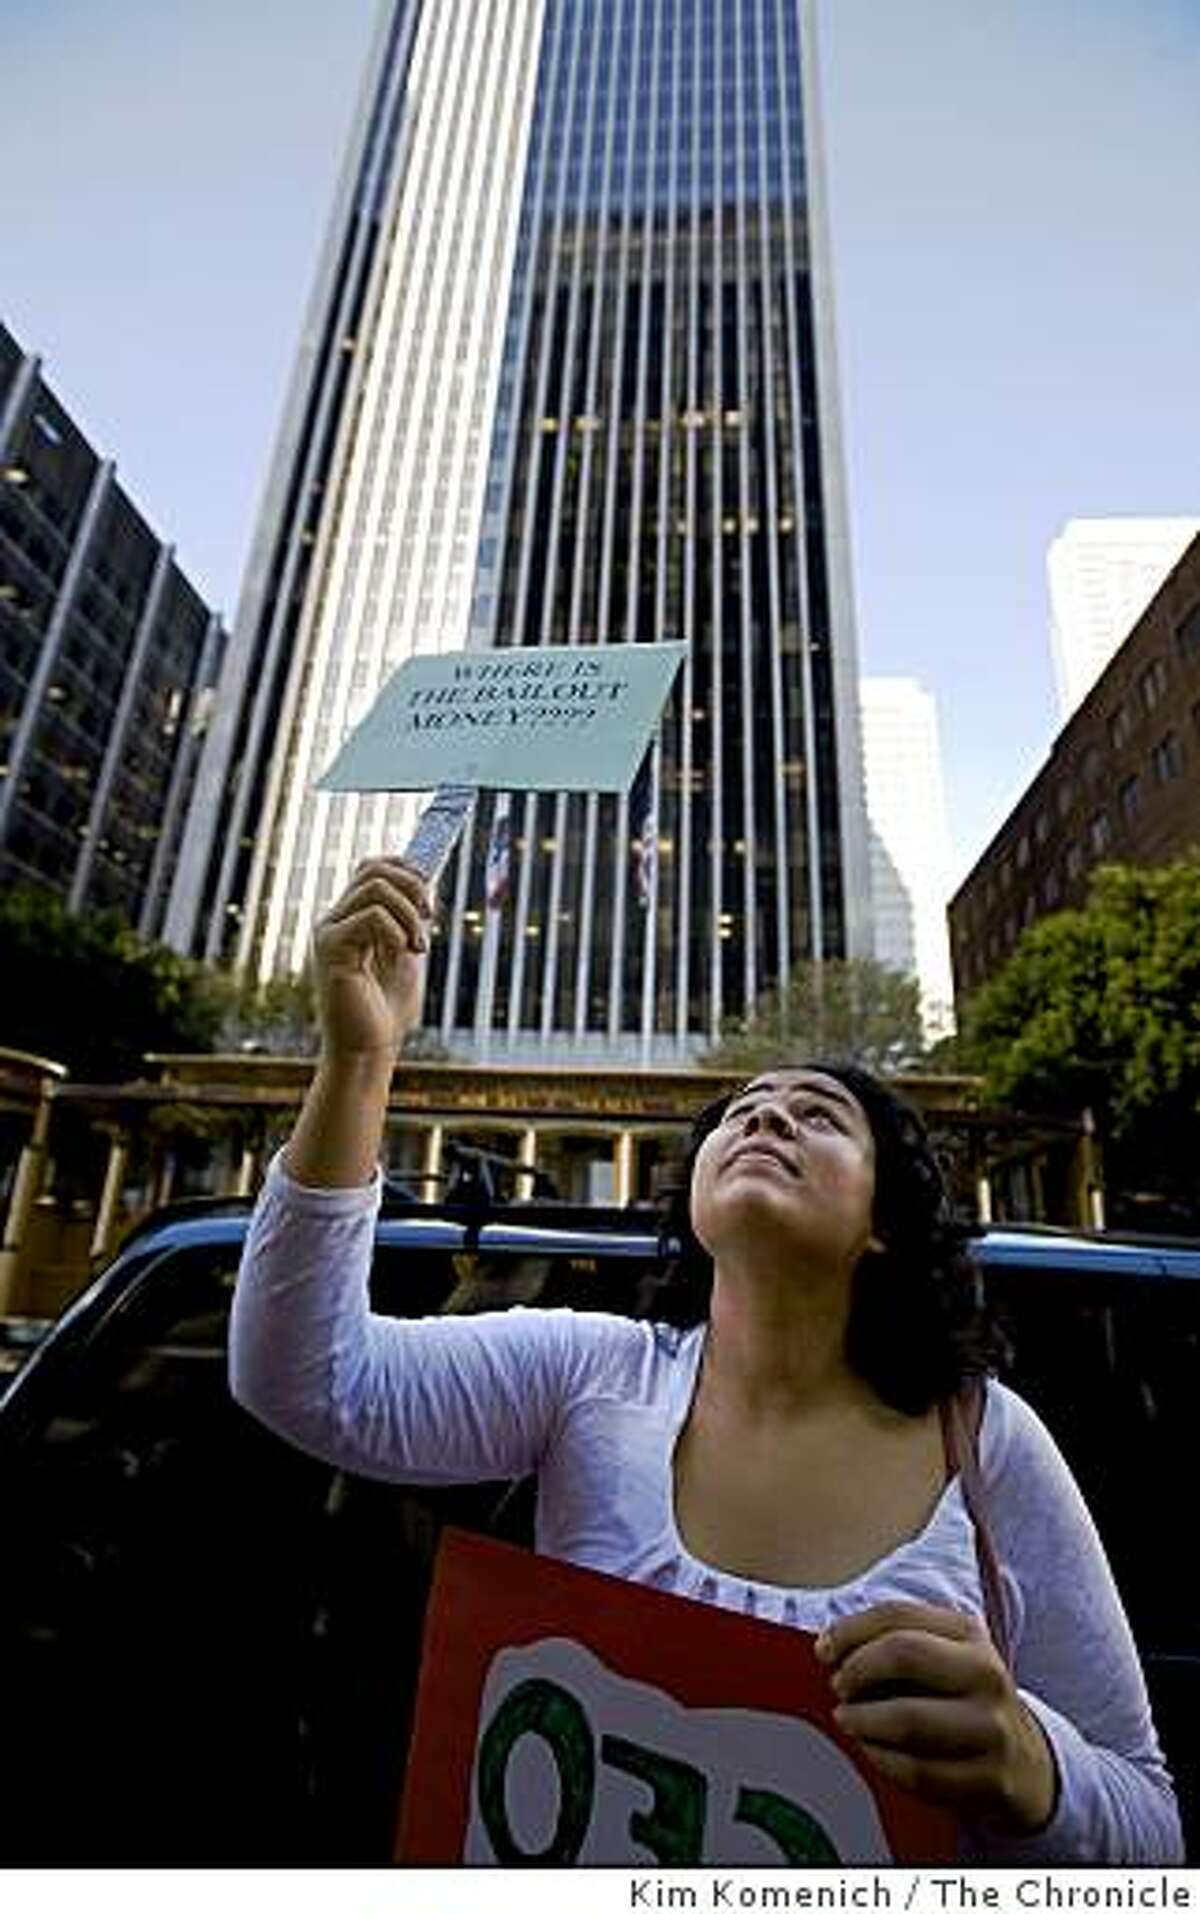 Andrea Putman of San Jose, Calif., holds a sign outside One California Street in San Francisco, Calif., as protesters marched through the city's financial district on Thursday, Jan. 15, 2009, calling on major banks that received billions in federal bailout funds to do more to funnel that money to the communities most in need.